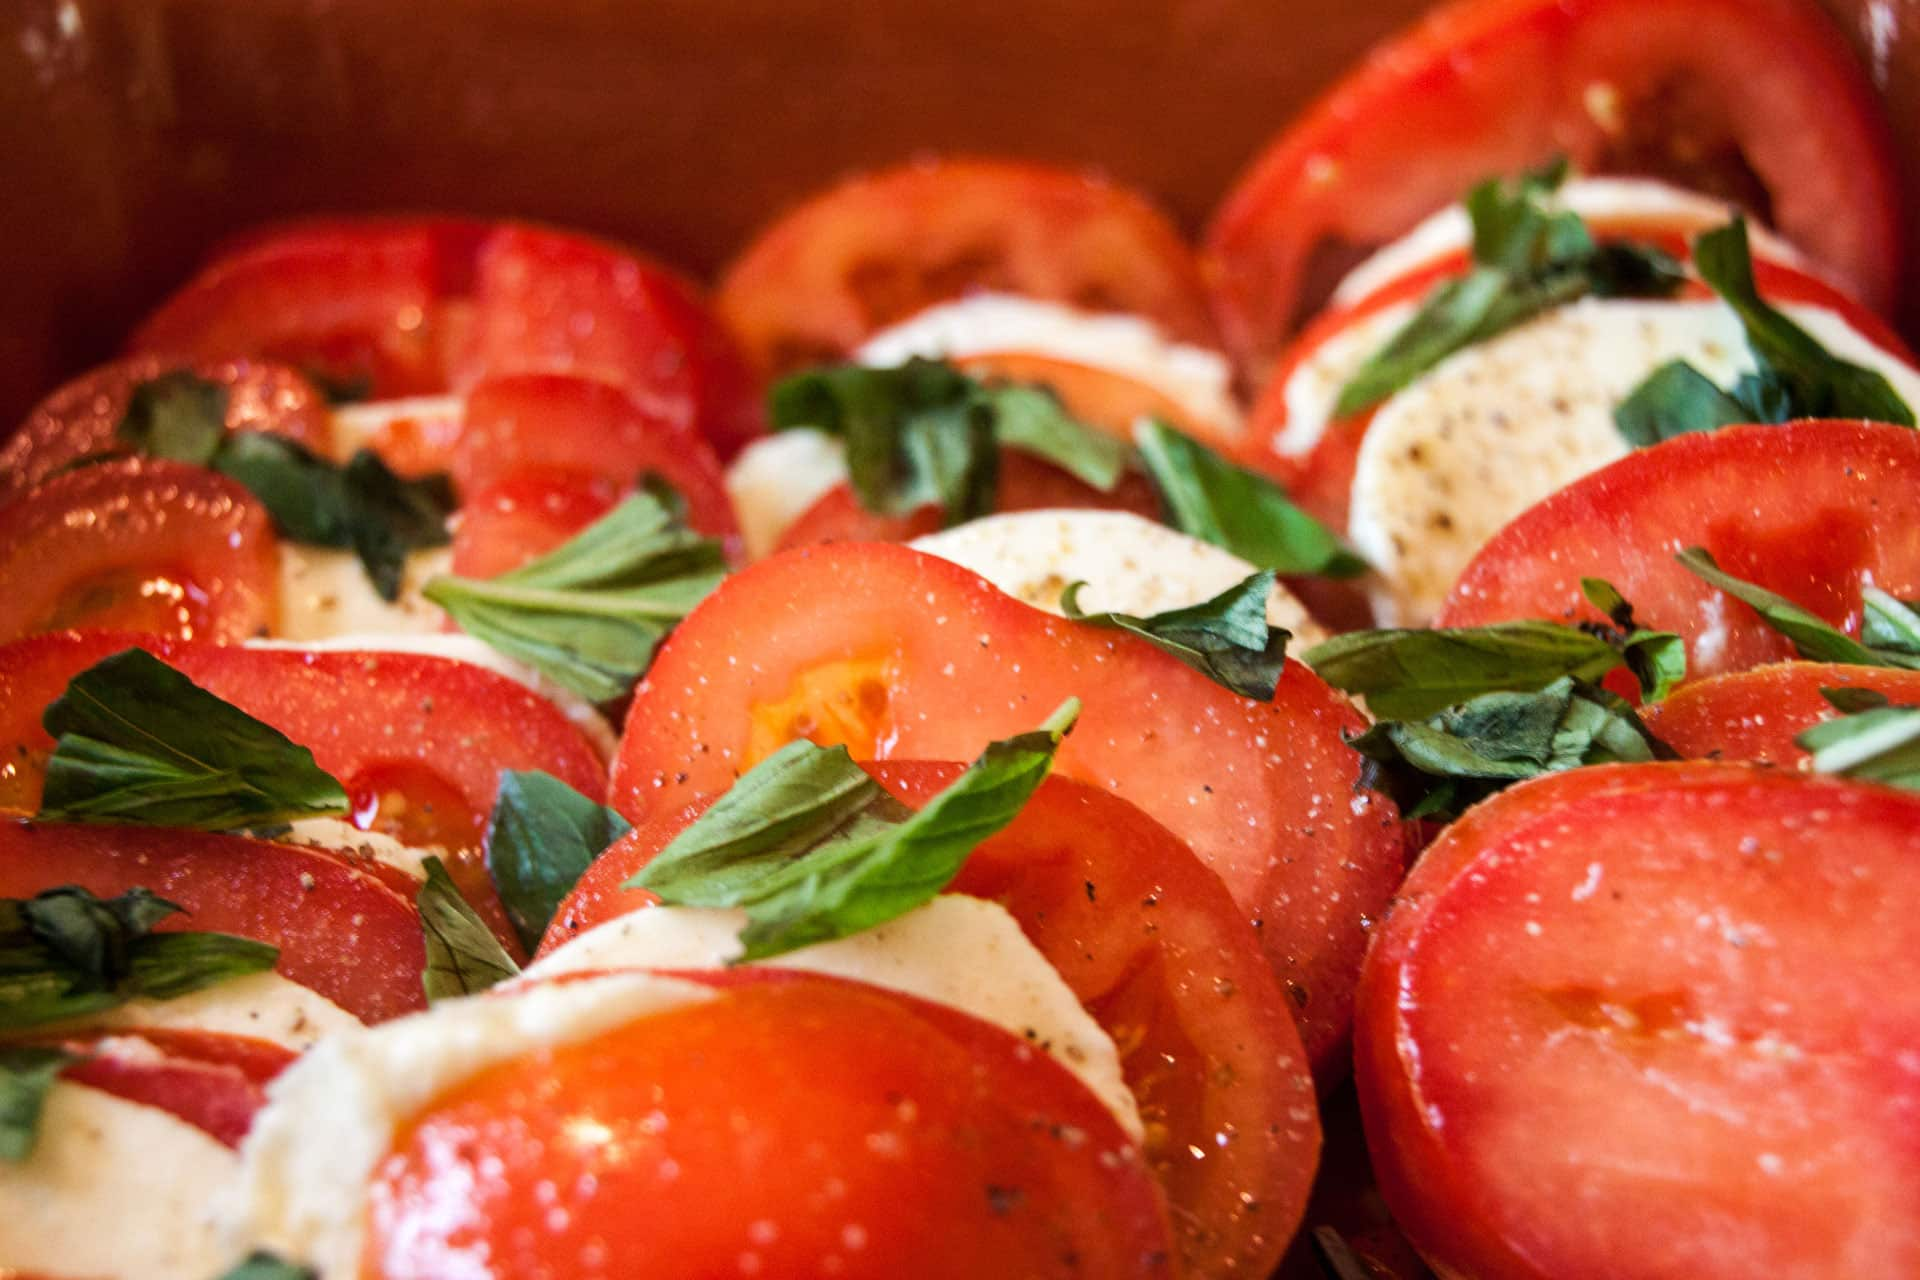 Tomato mozzarella plate with fresh basil and olive oil